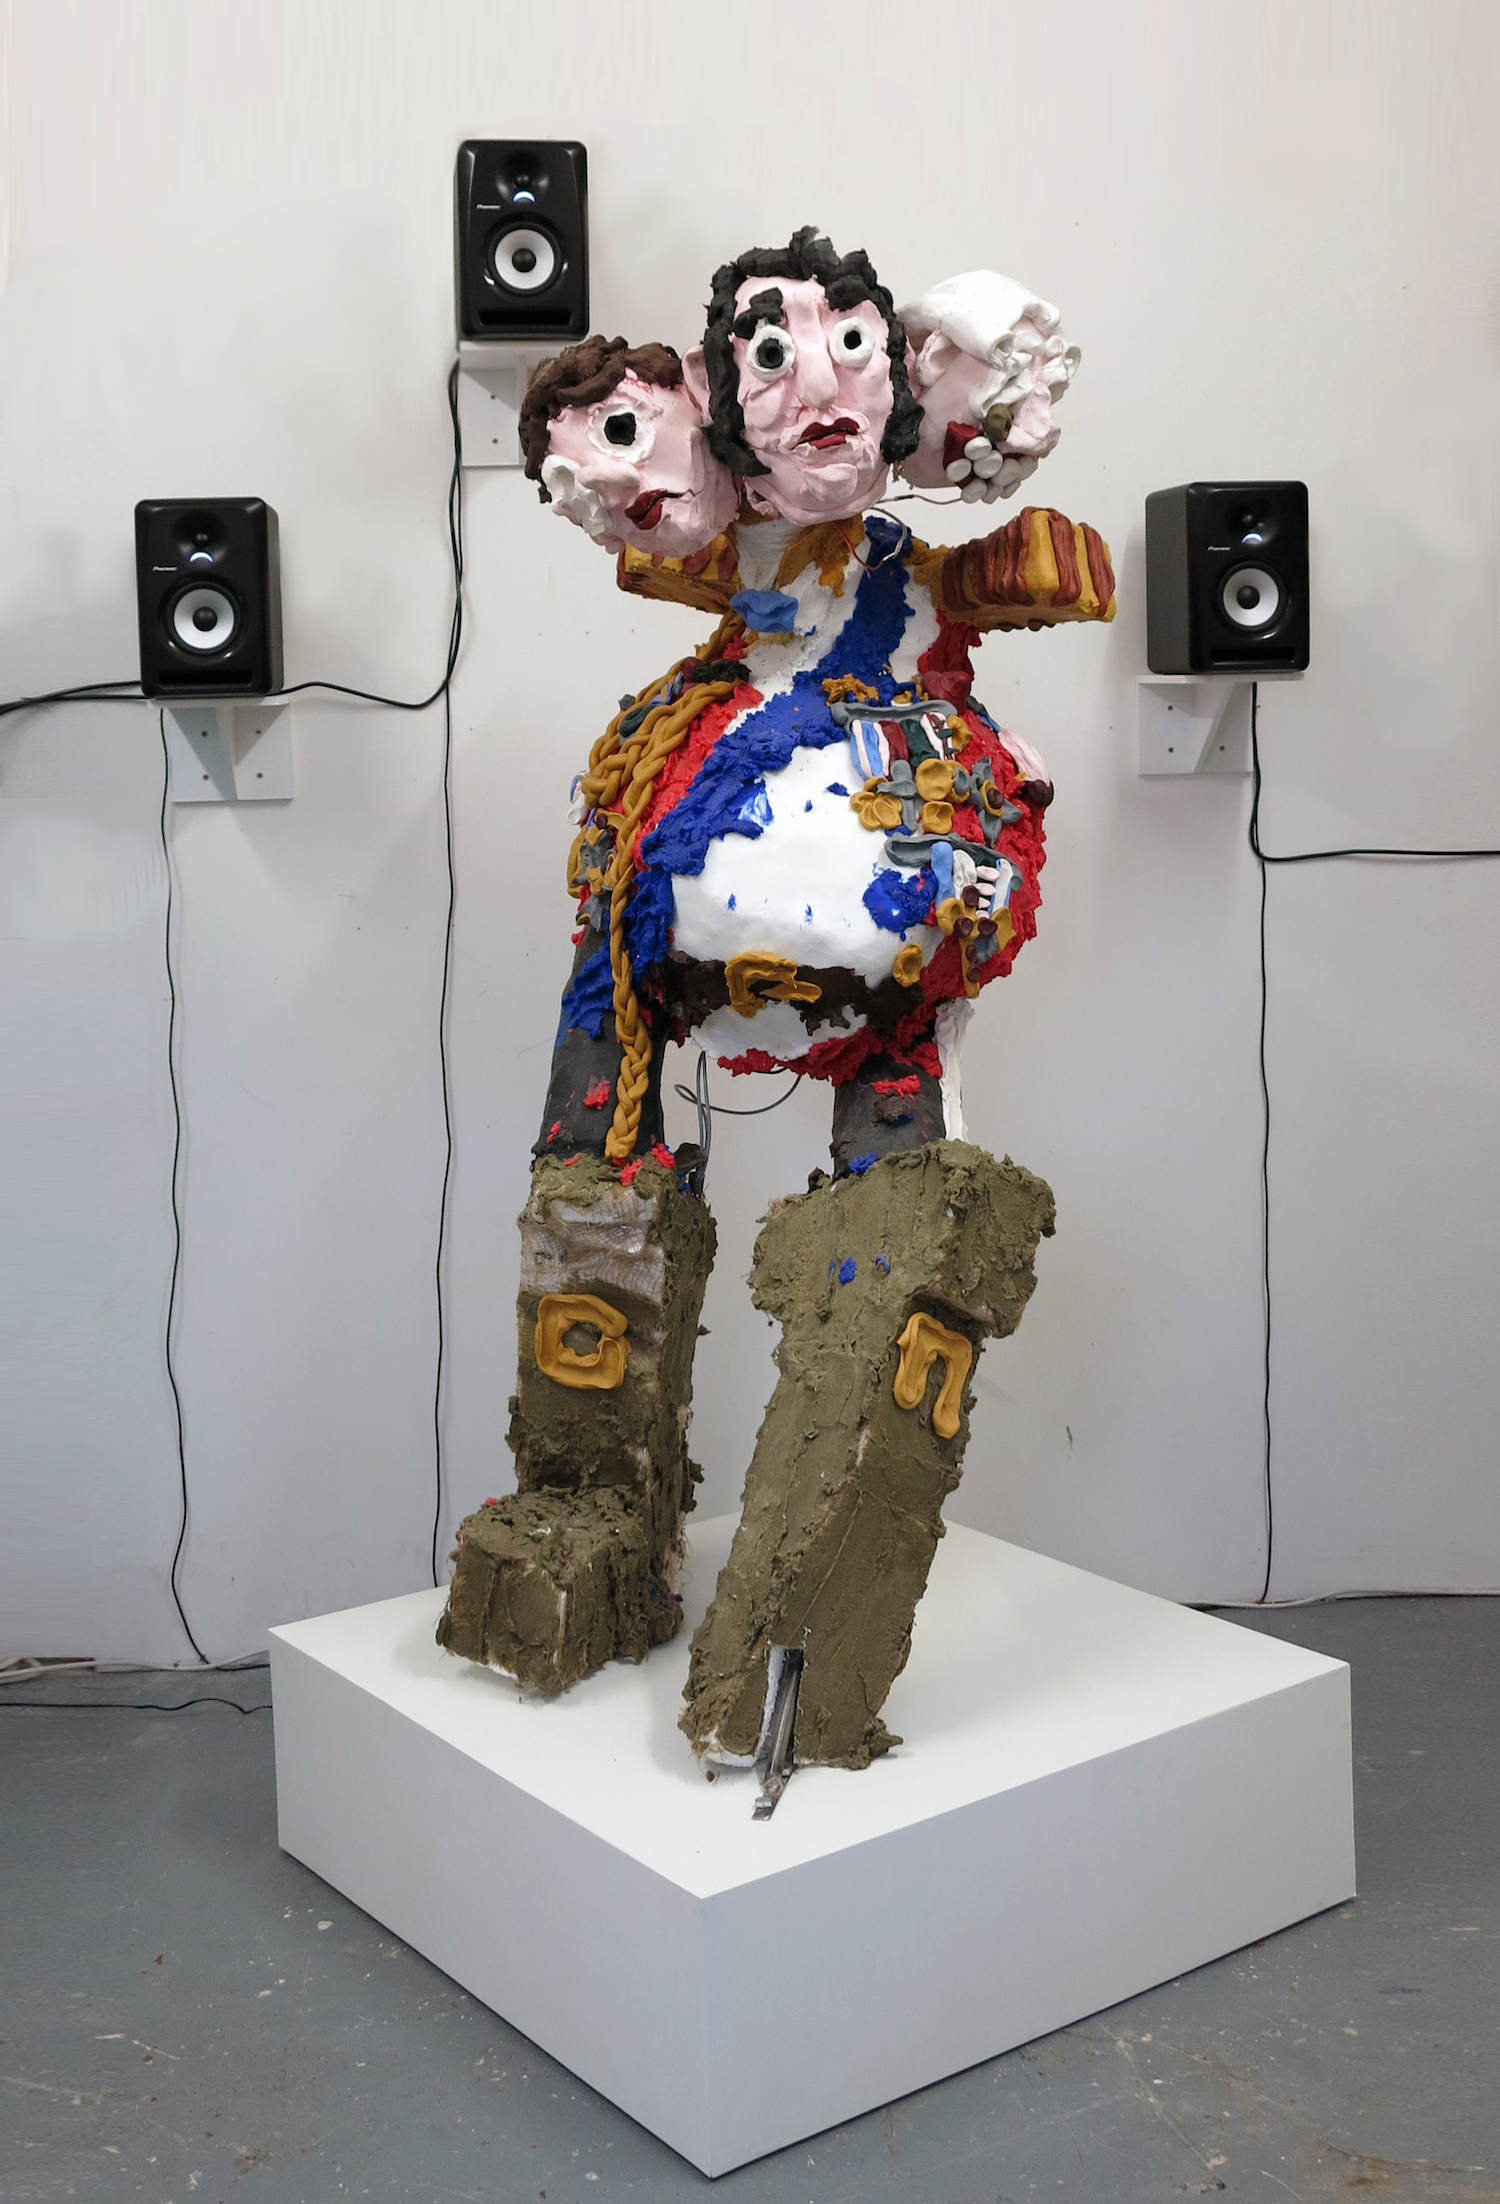 Jamie Fitzpatrick, Until You See the Whites of their Eyes, 2018. Wax, polystyrene, silicone, hessian, steel, animatronic components, audio. 213 x 102 x 103 cm.